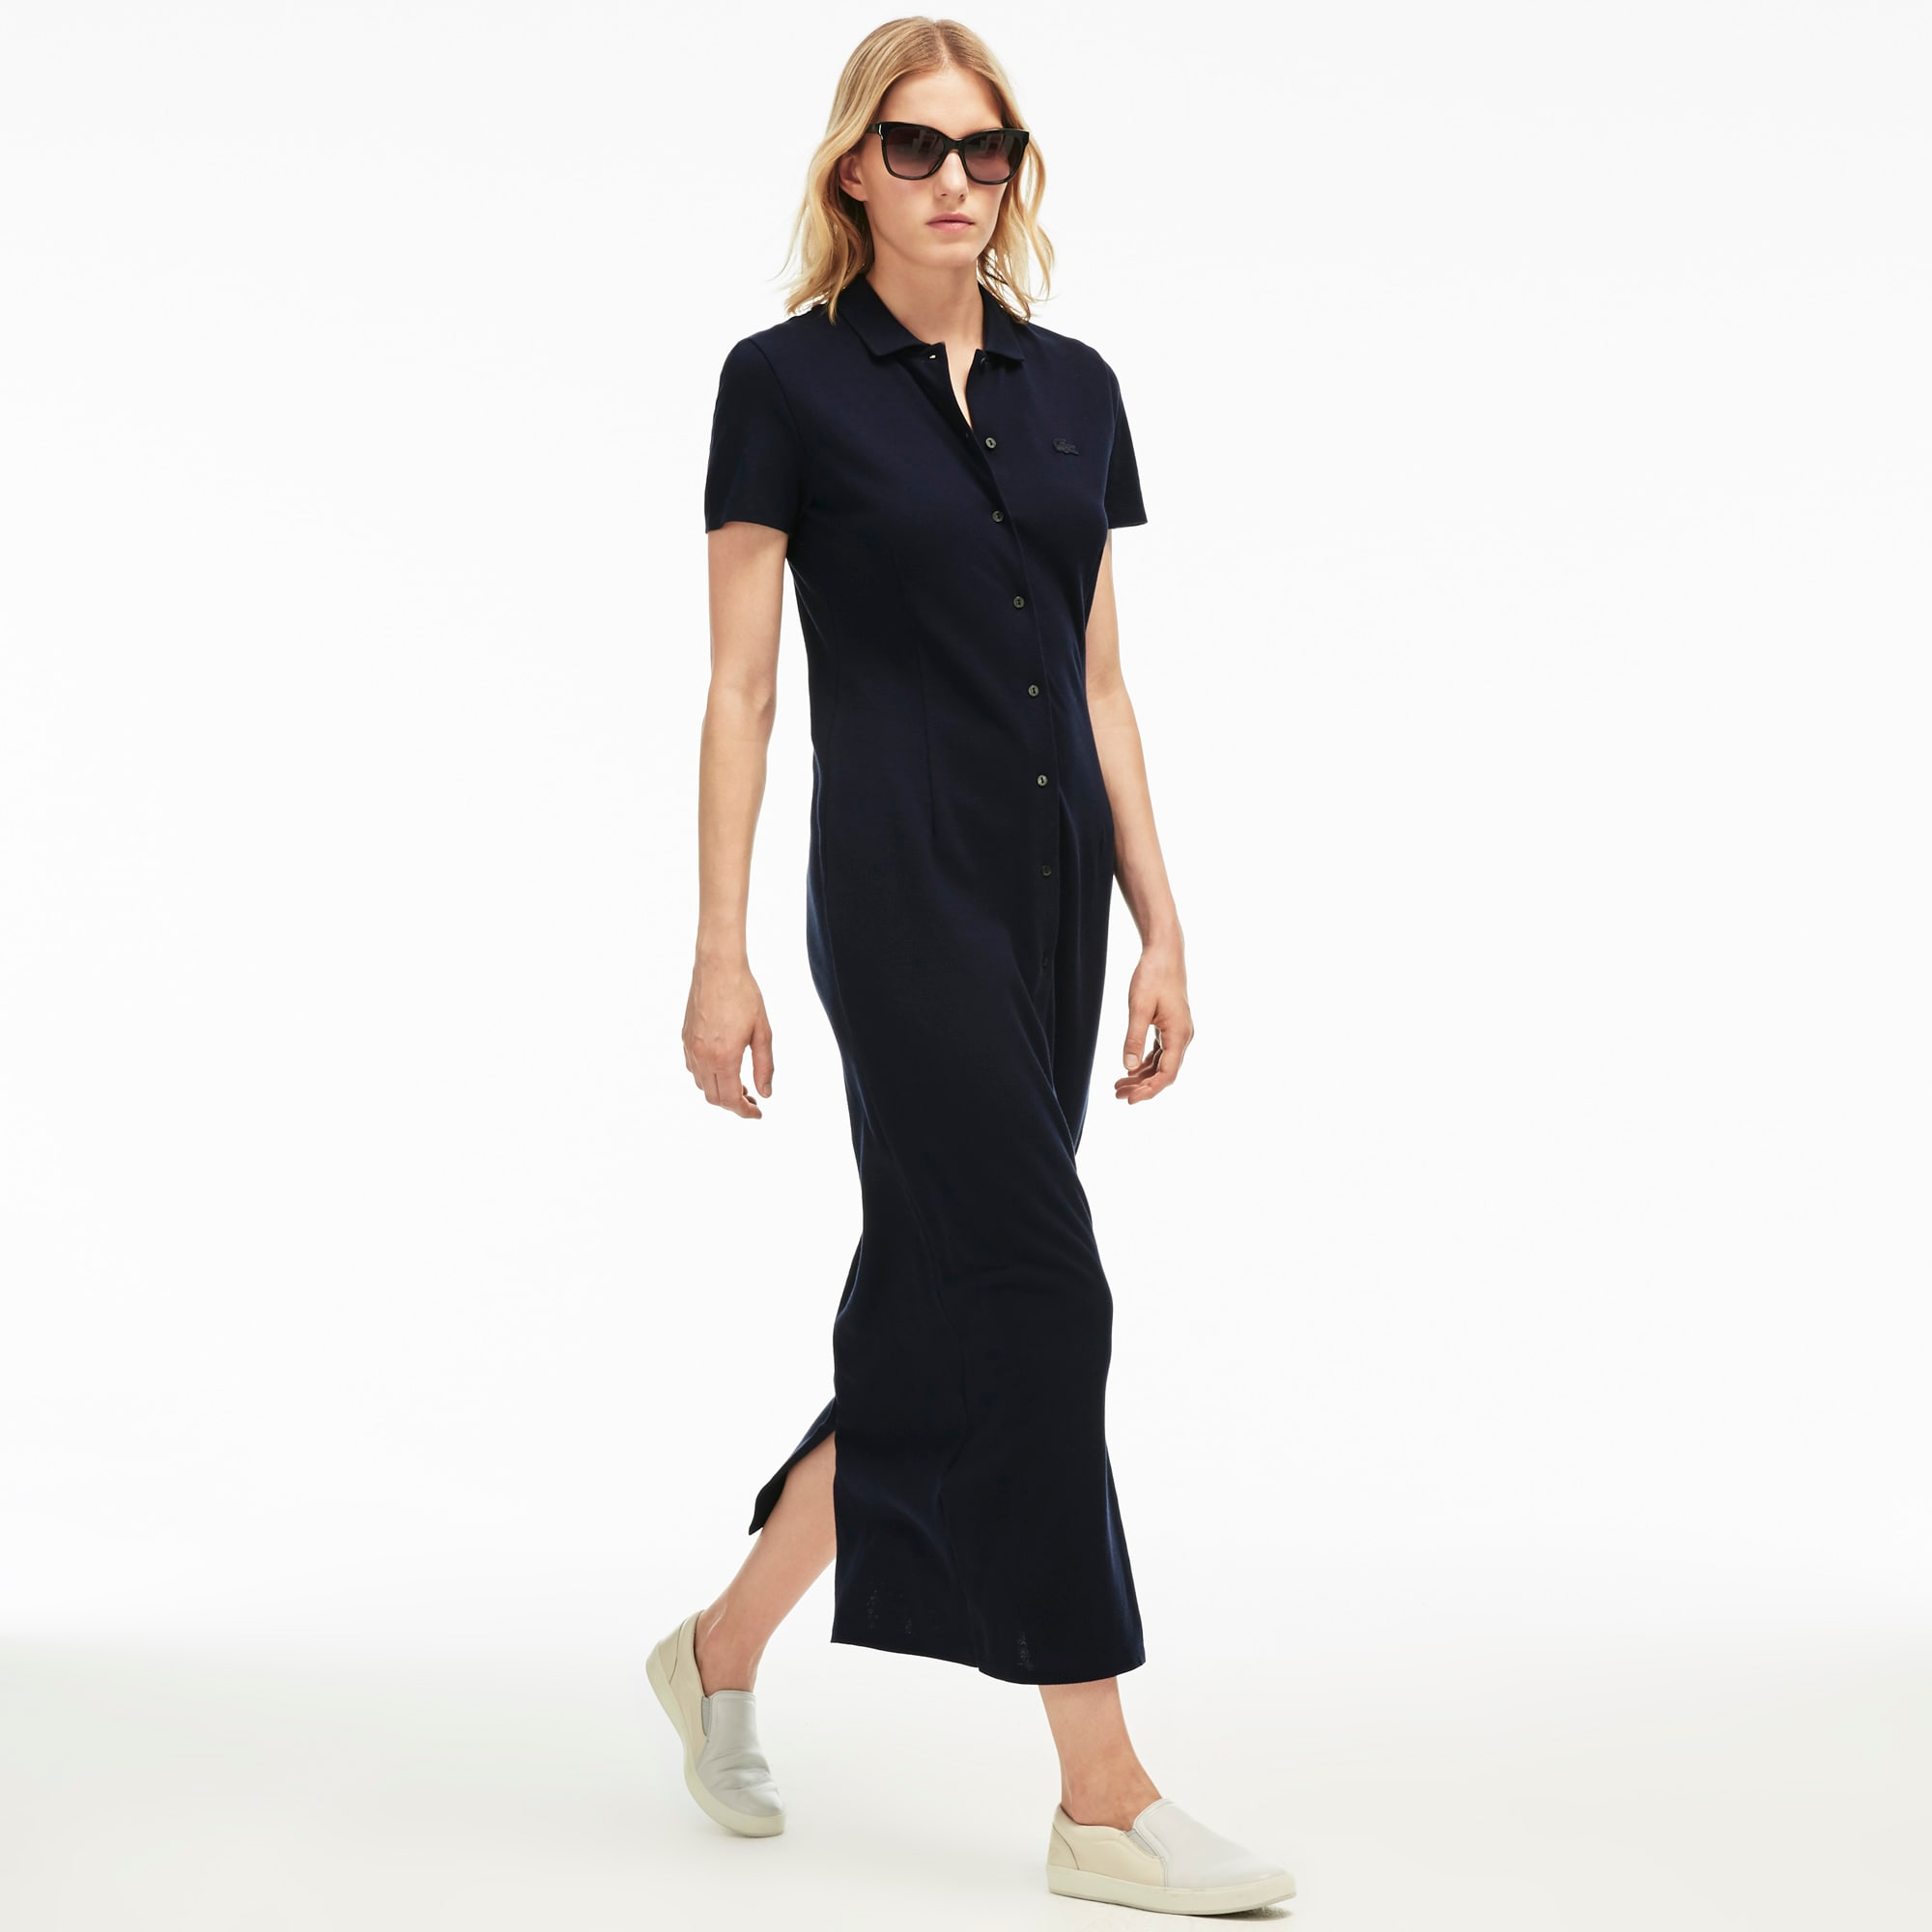 Dresses and Skirts | Womenu0026#39;s Clothing | LACOSTE